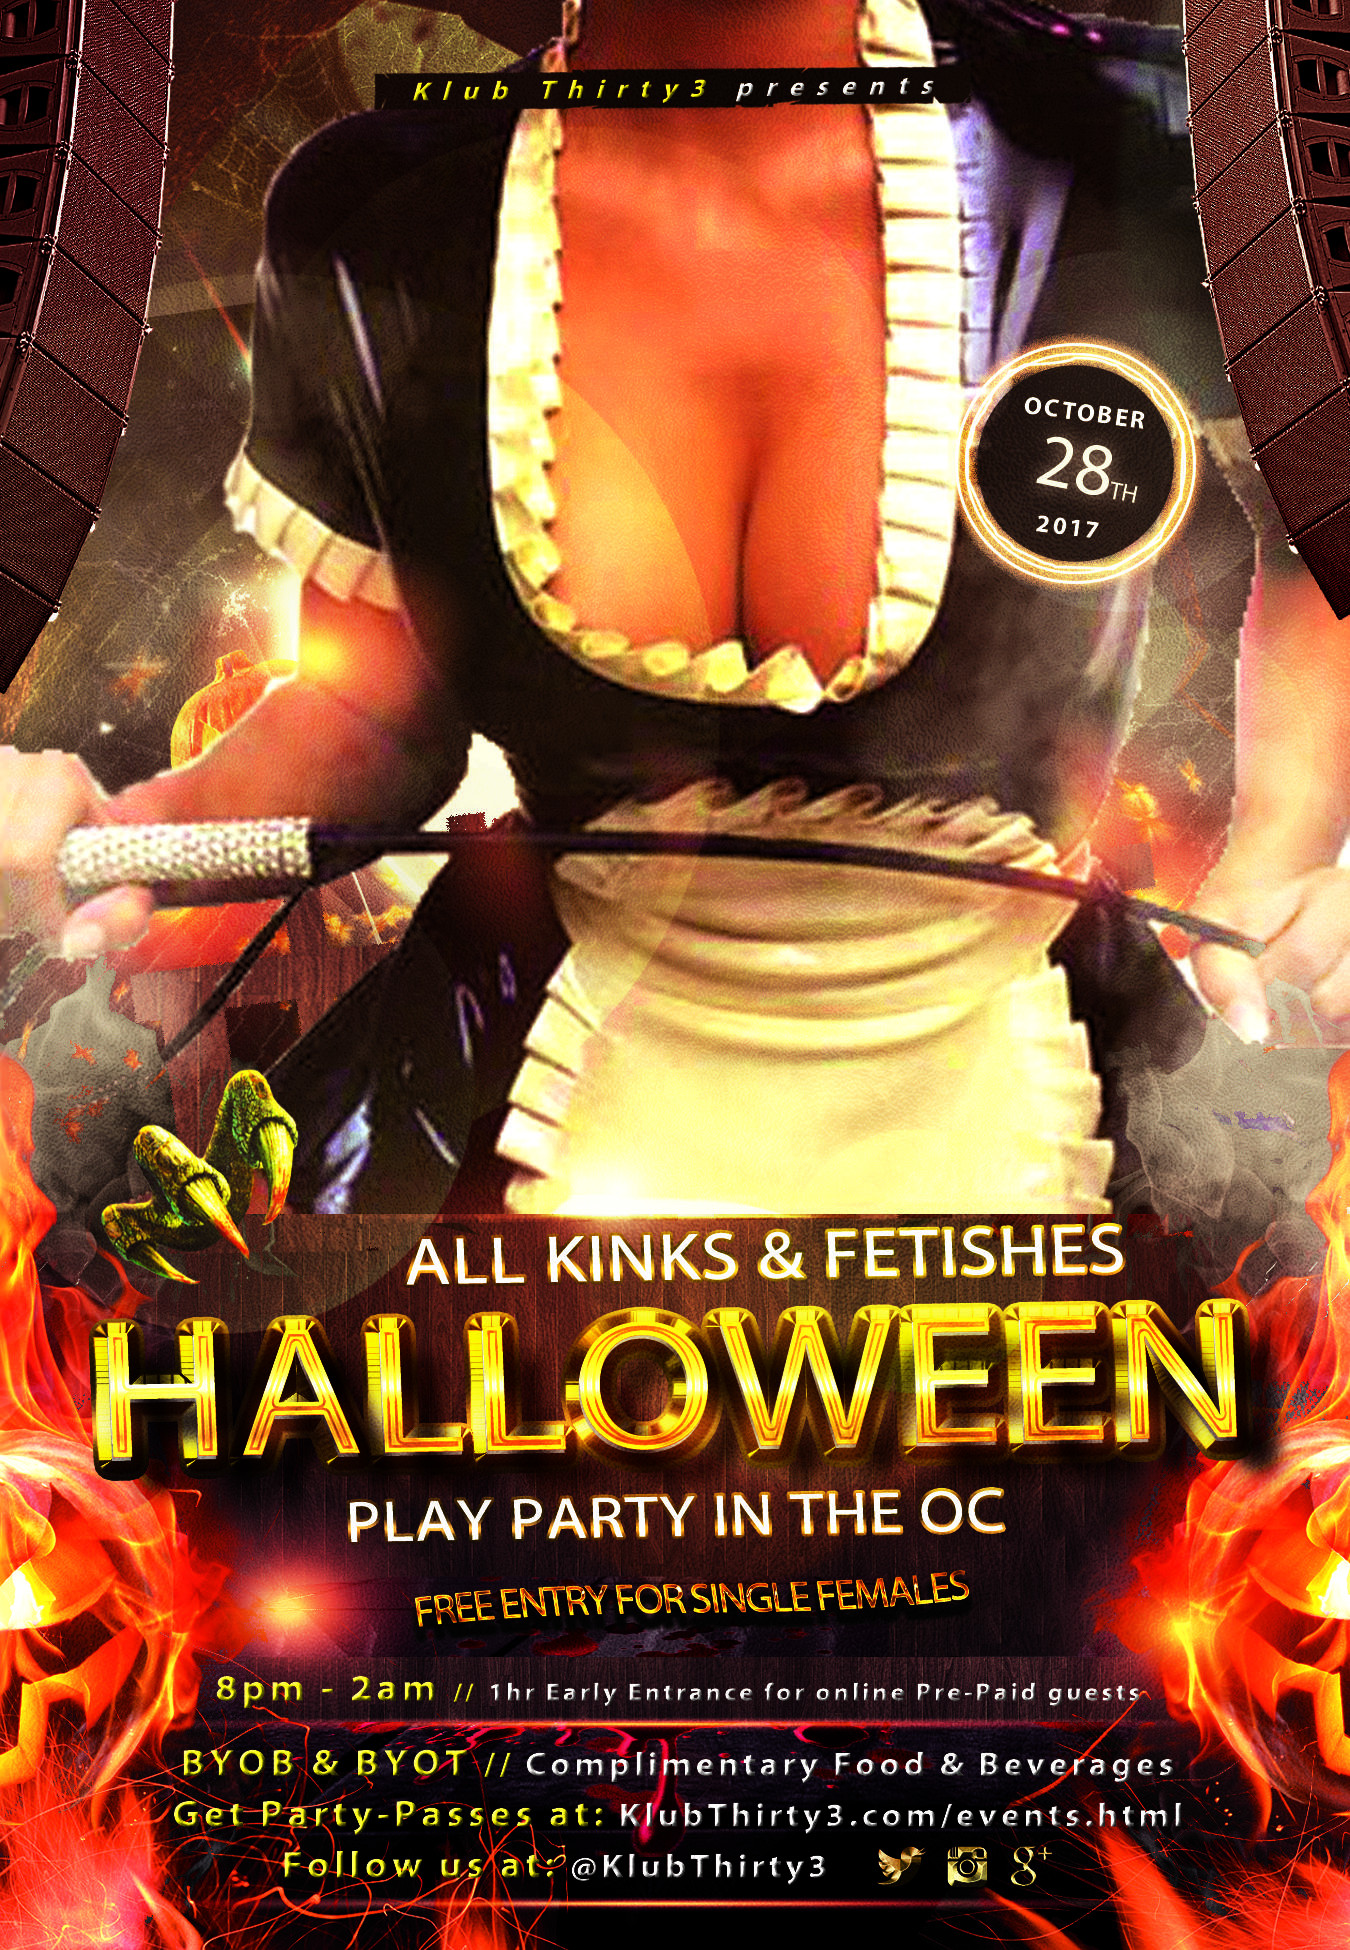 K33 | Halloween AKF Party @ Klub Thirty3 - 28 OCT 2017